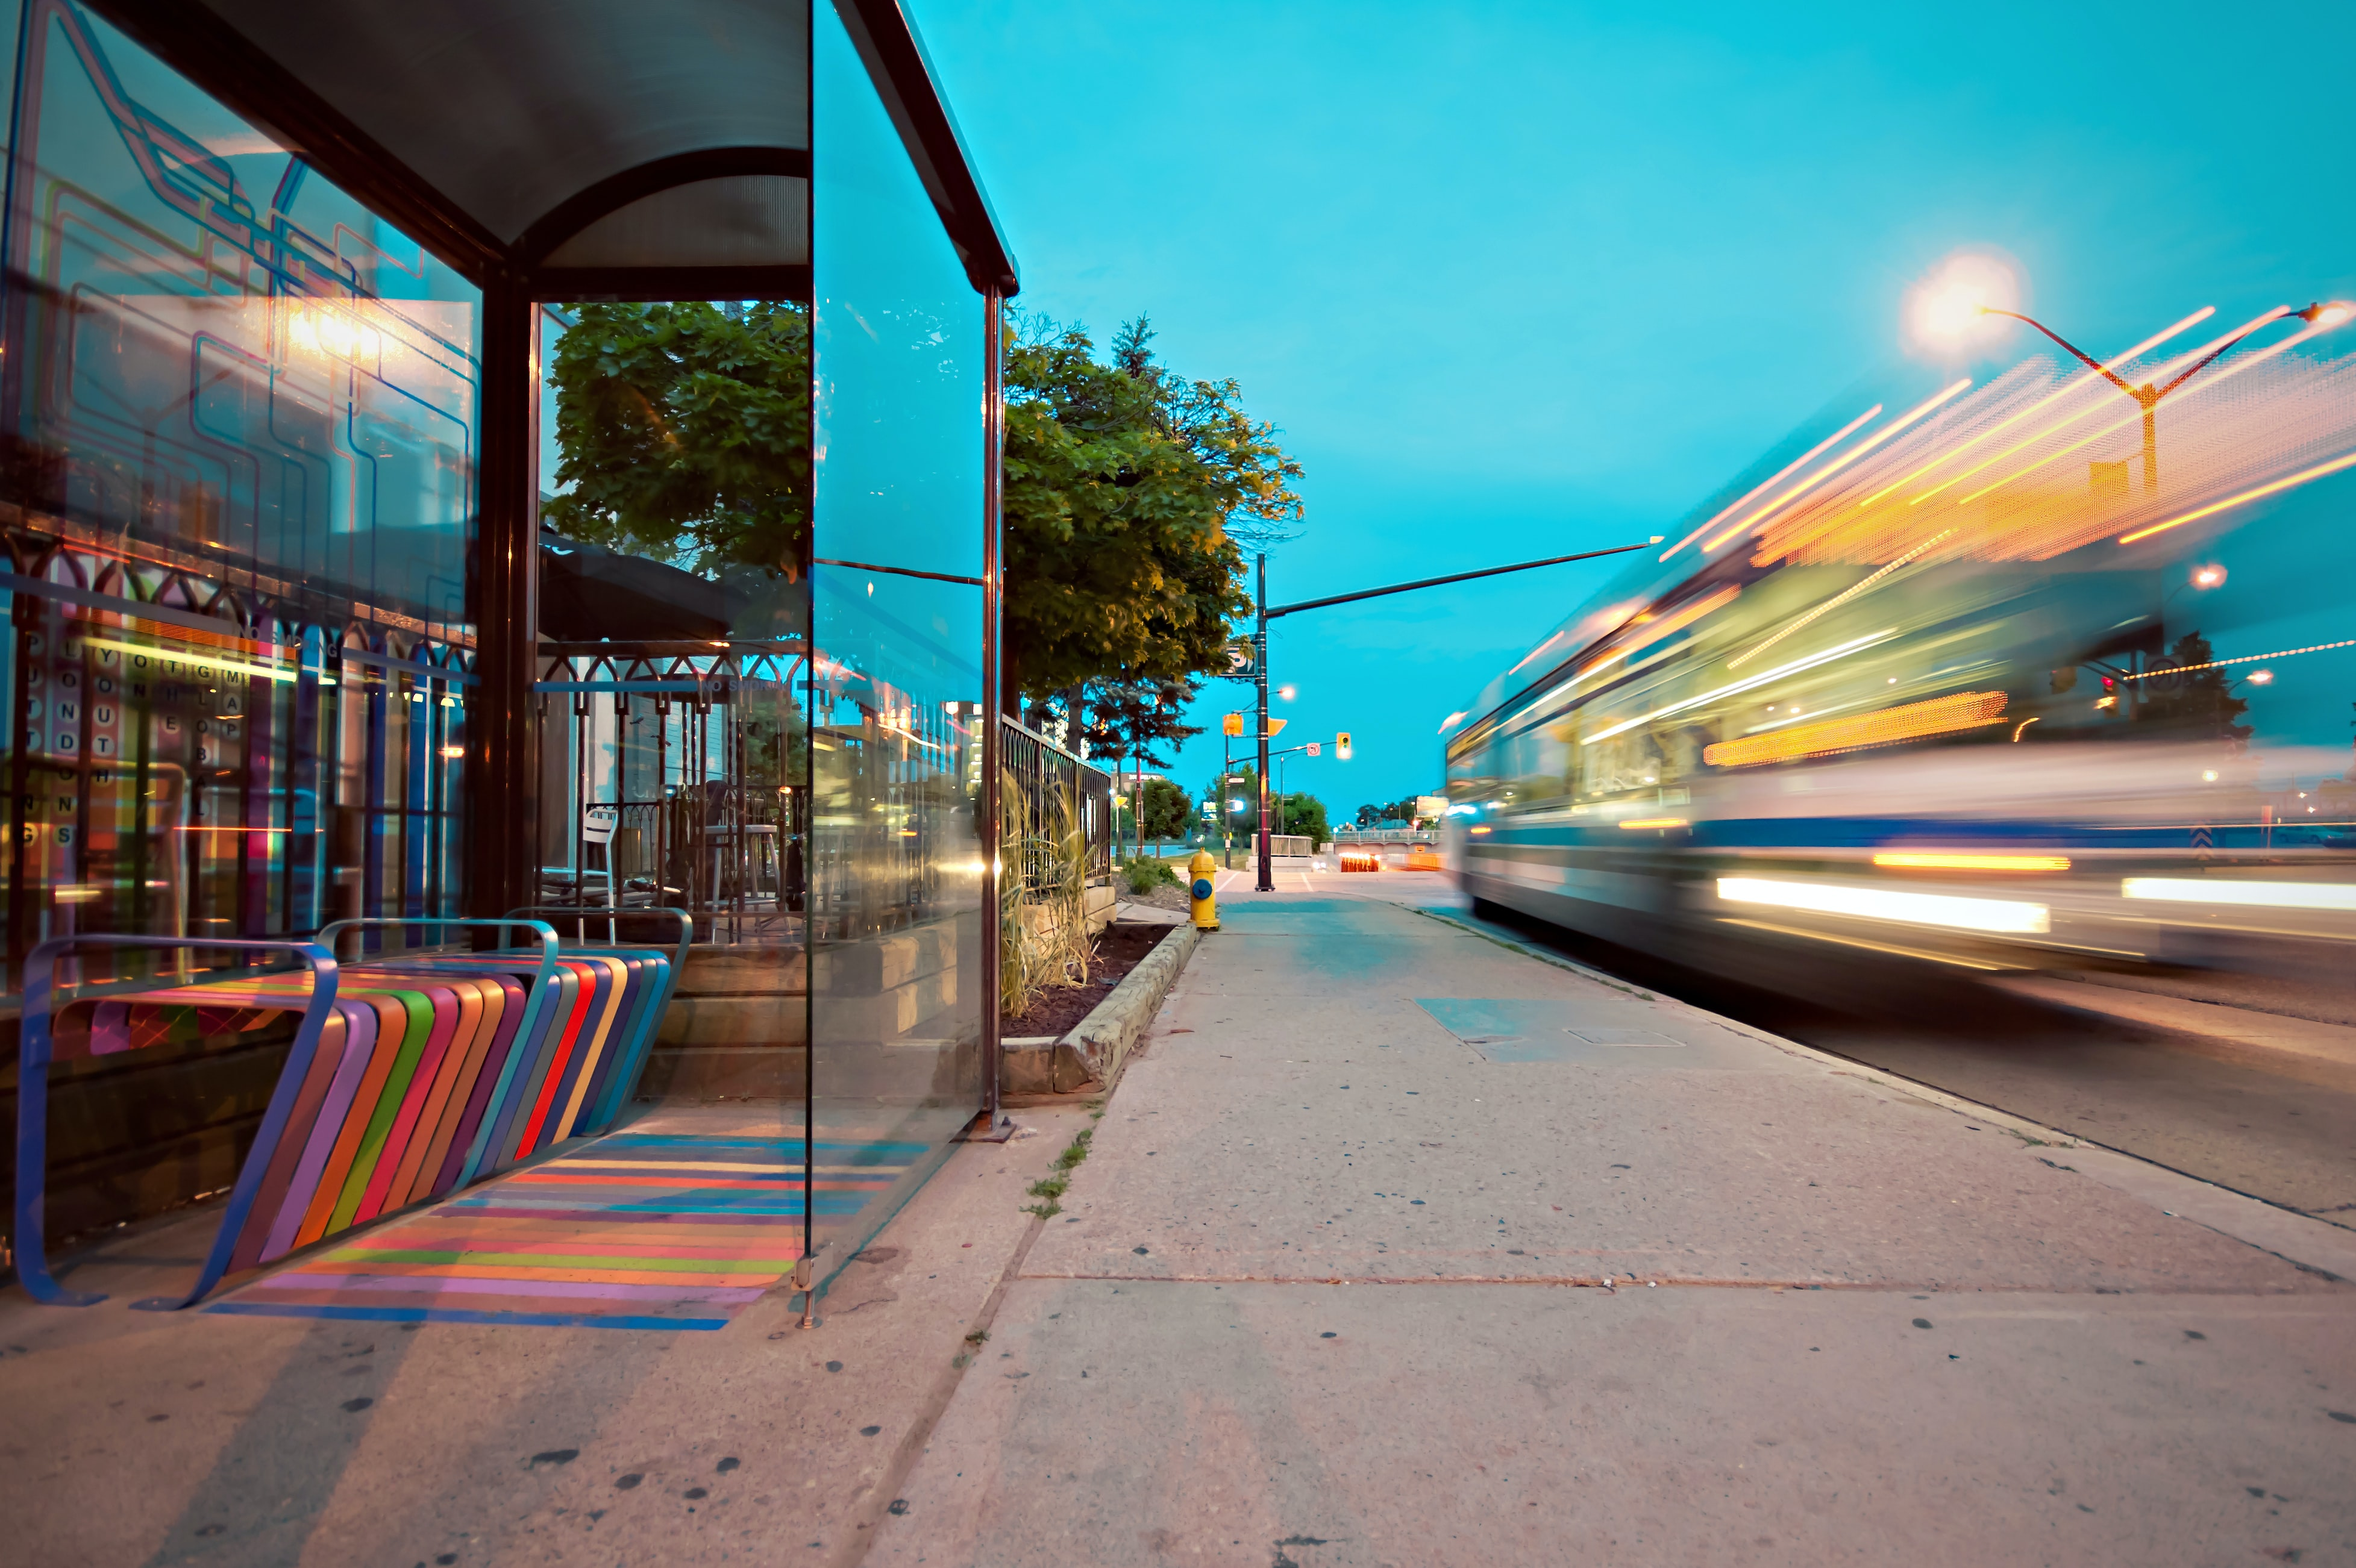 A long-exposure shot of a bus driving past a glass wall